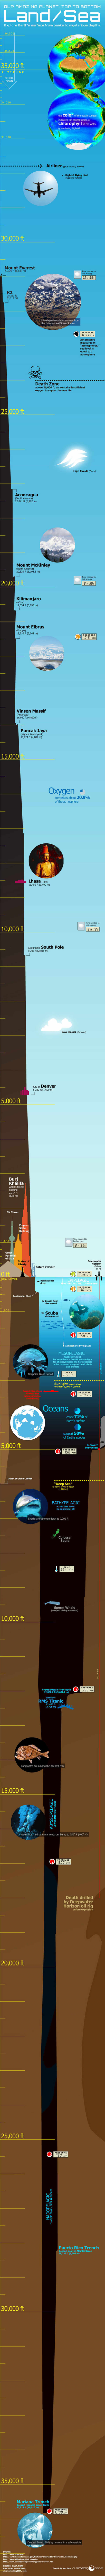 Tallest Mountain to Deepest Ocean infographic